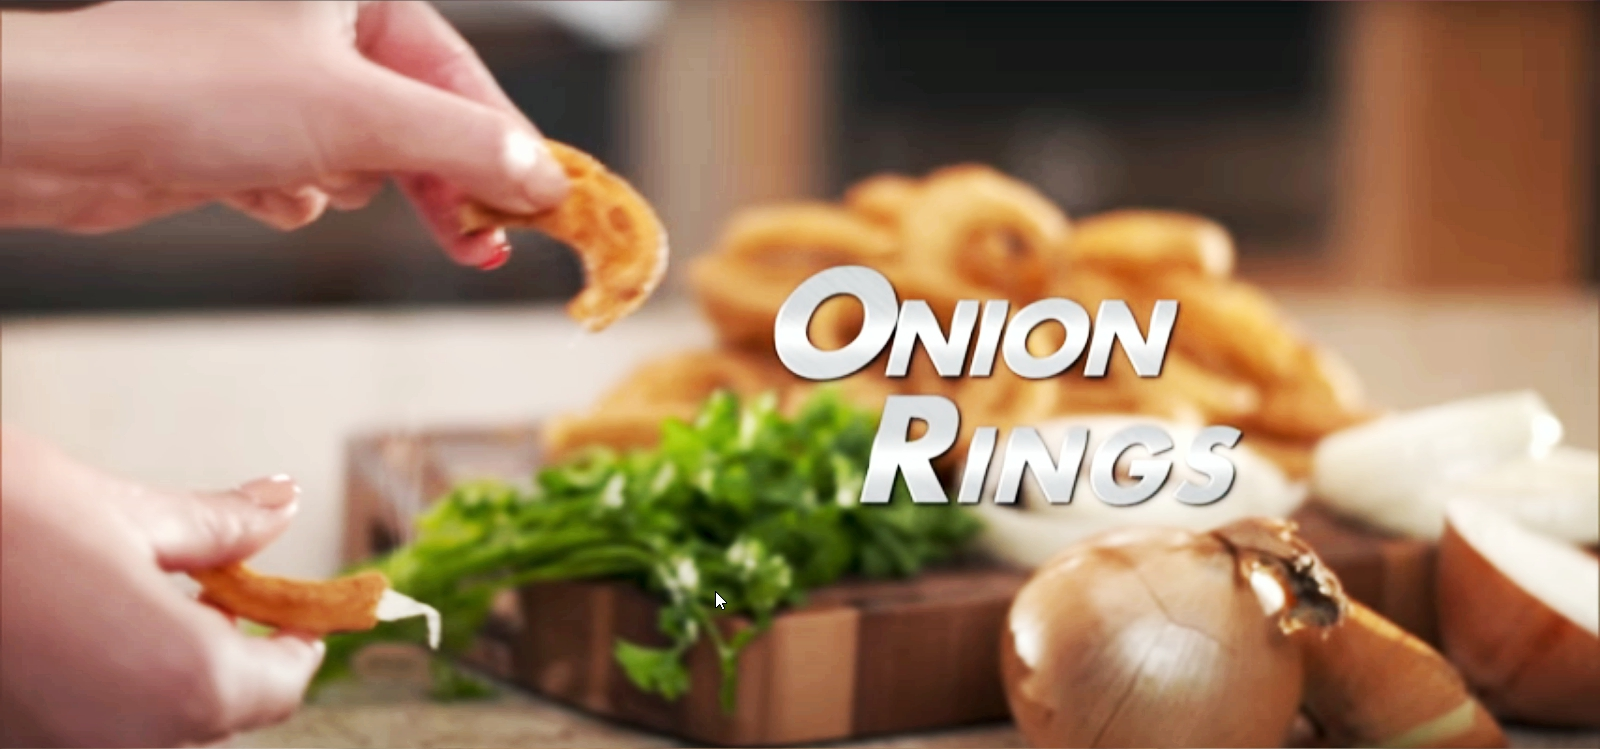 onion rings made from power air fryer